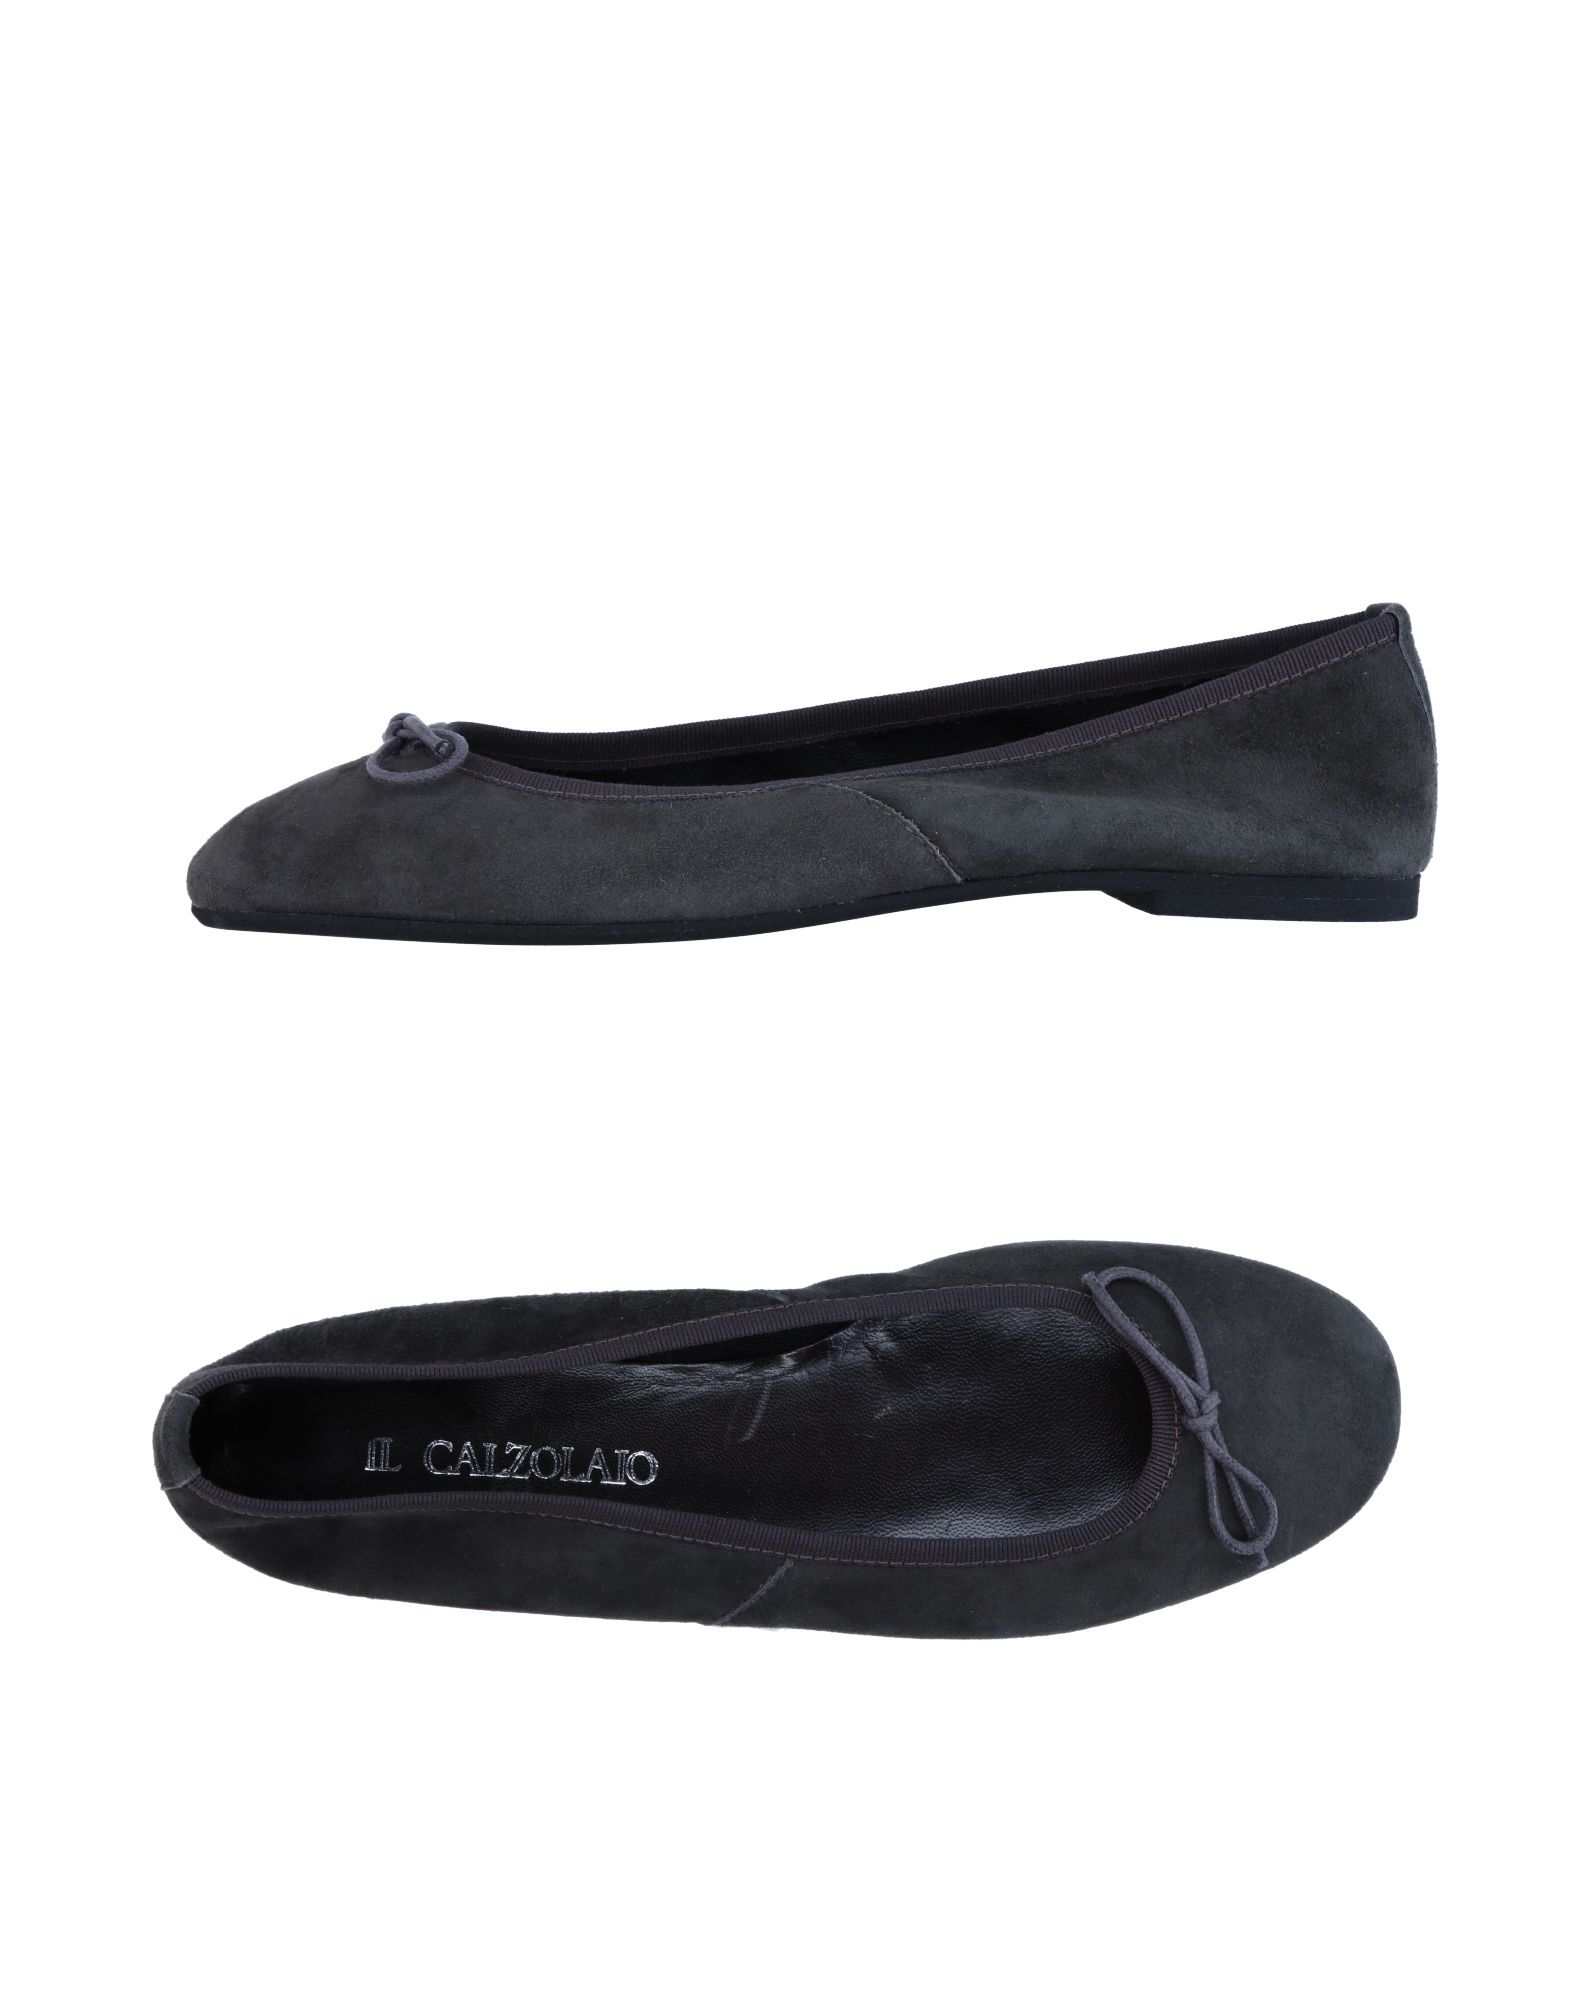 IL CALZOLAIO Ballet flats best seller for sale outlet locations sale best wholesale buy cheap discount free shipping wiki 2LgrS